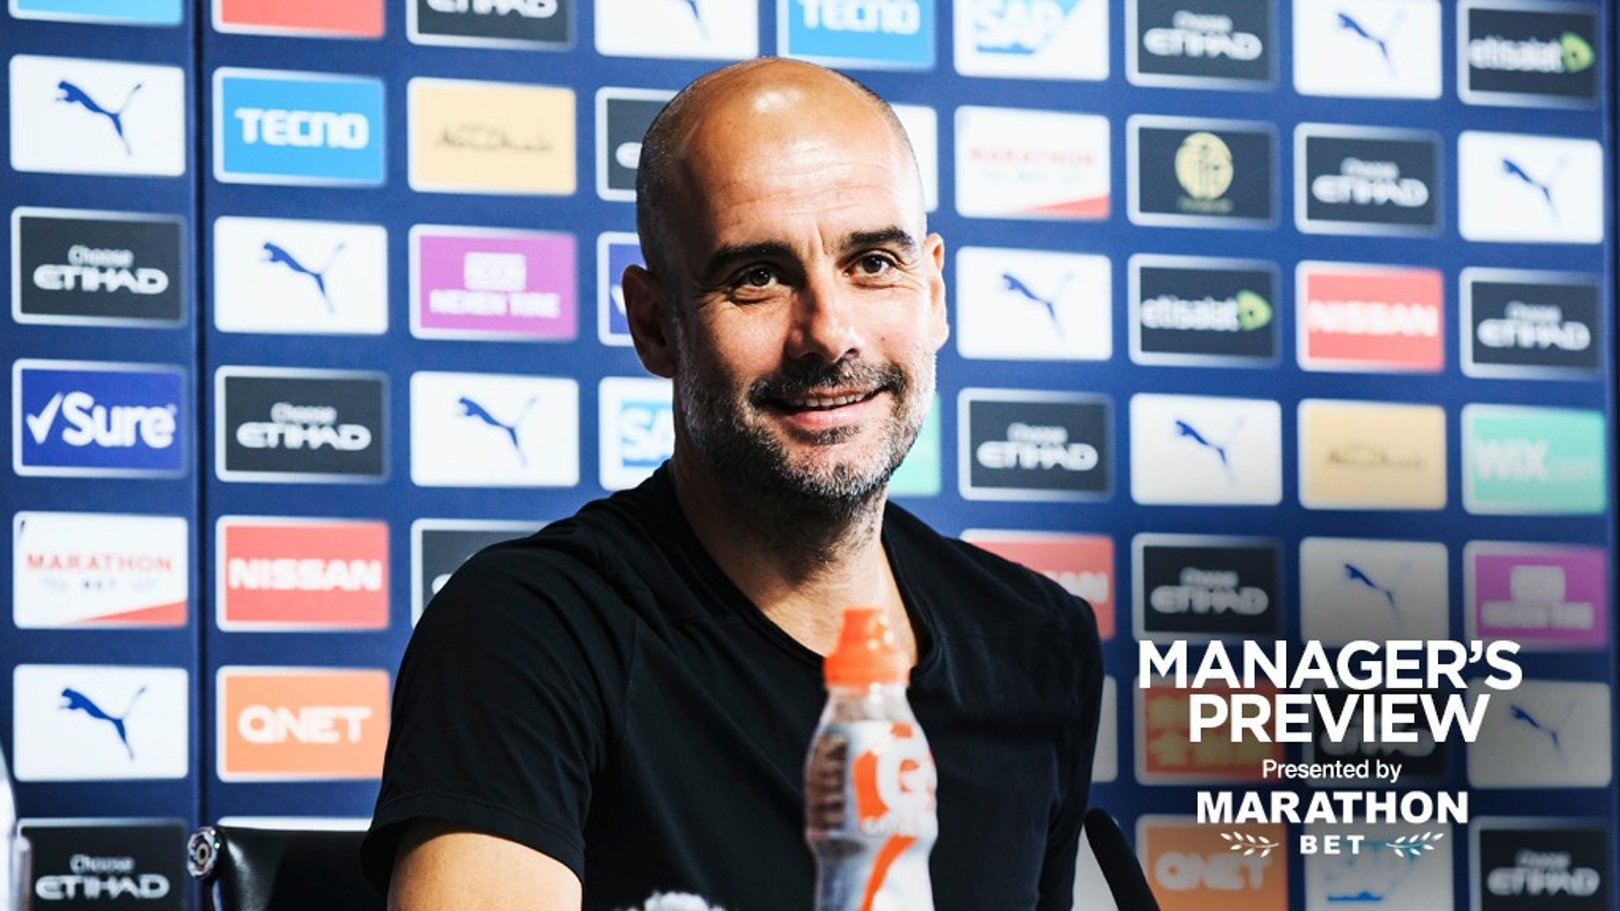 PRE-MATCH: Pep Guardiola speaks to journalists before our game at Bournemouth.